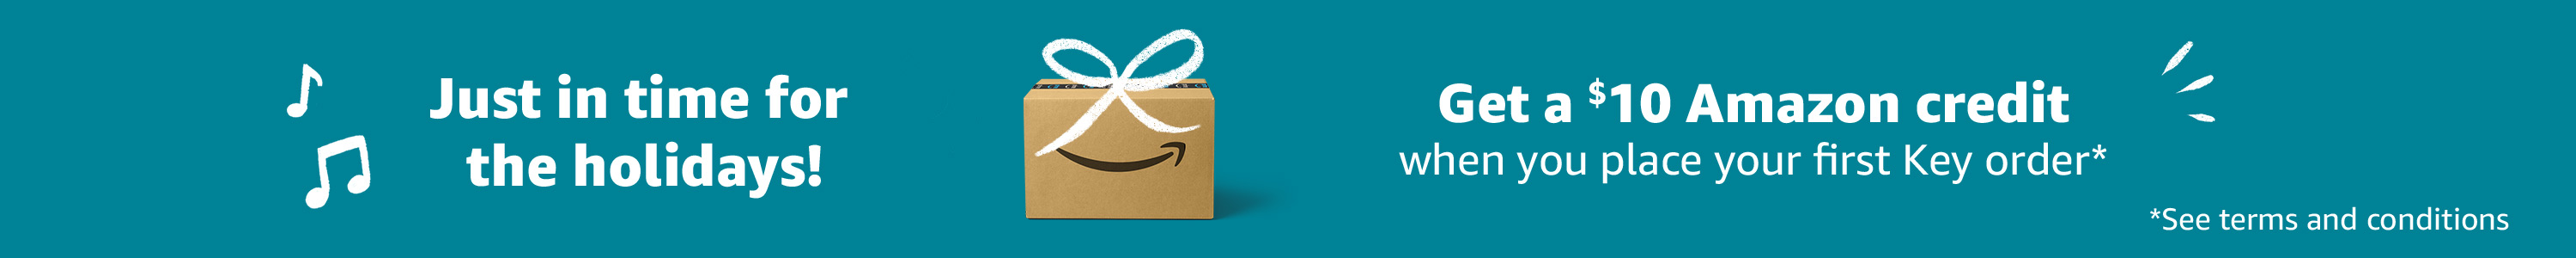 Get a $10 Amazon credit!